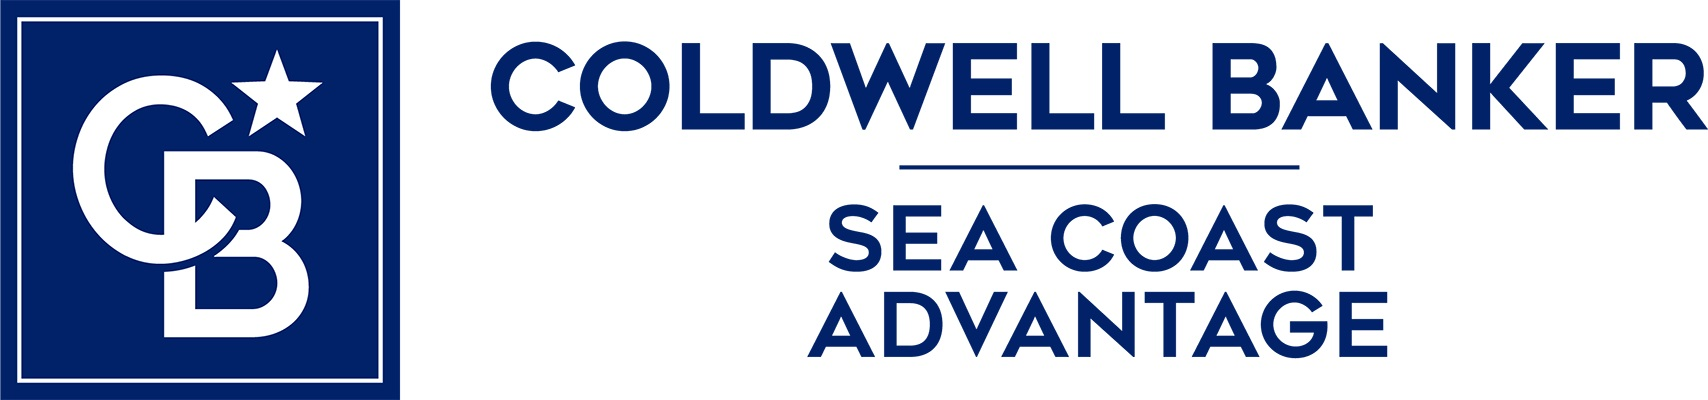 Pete Key - Coldwell Banker Sea Coast Advantage Realty